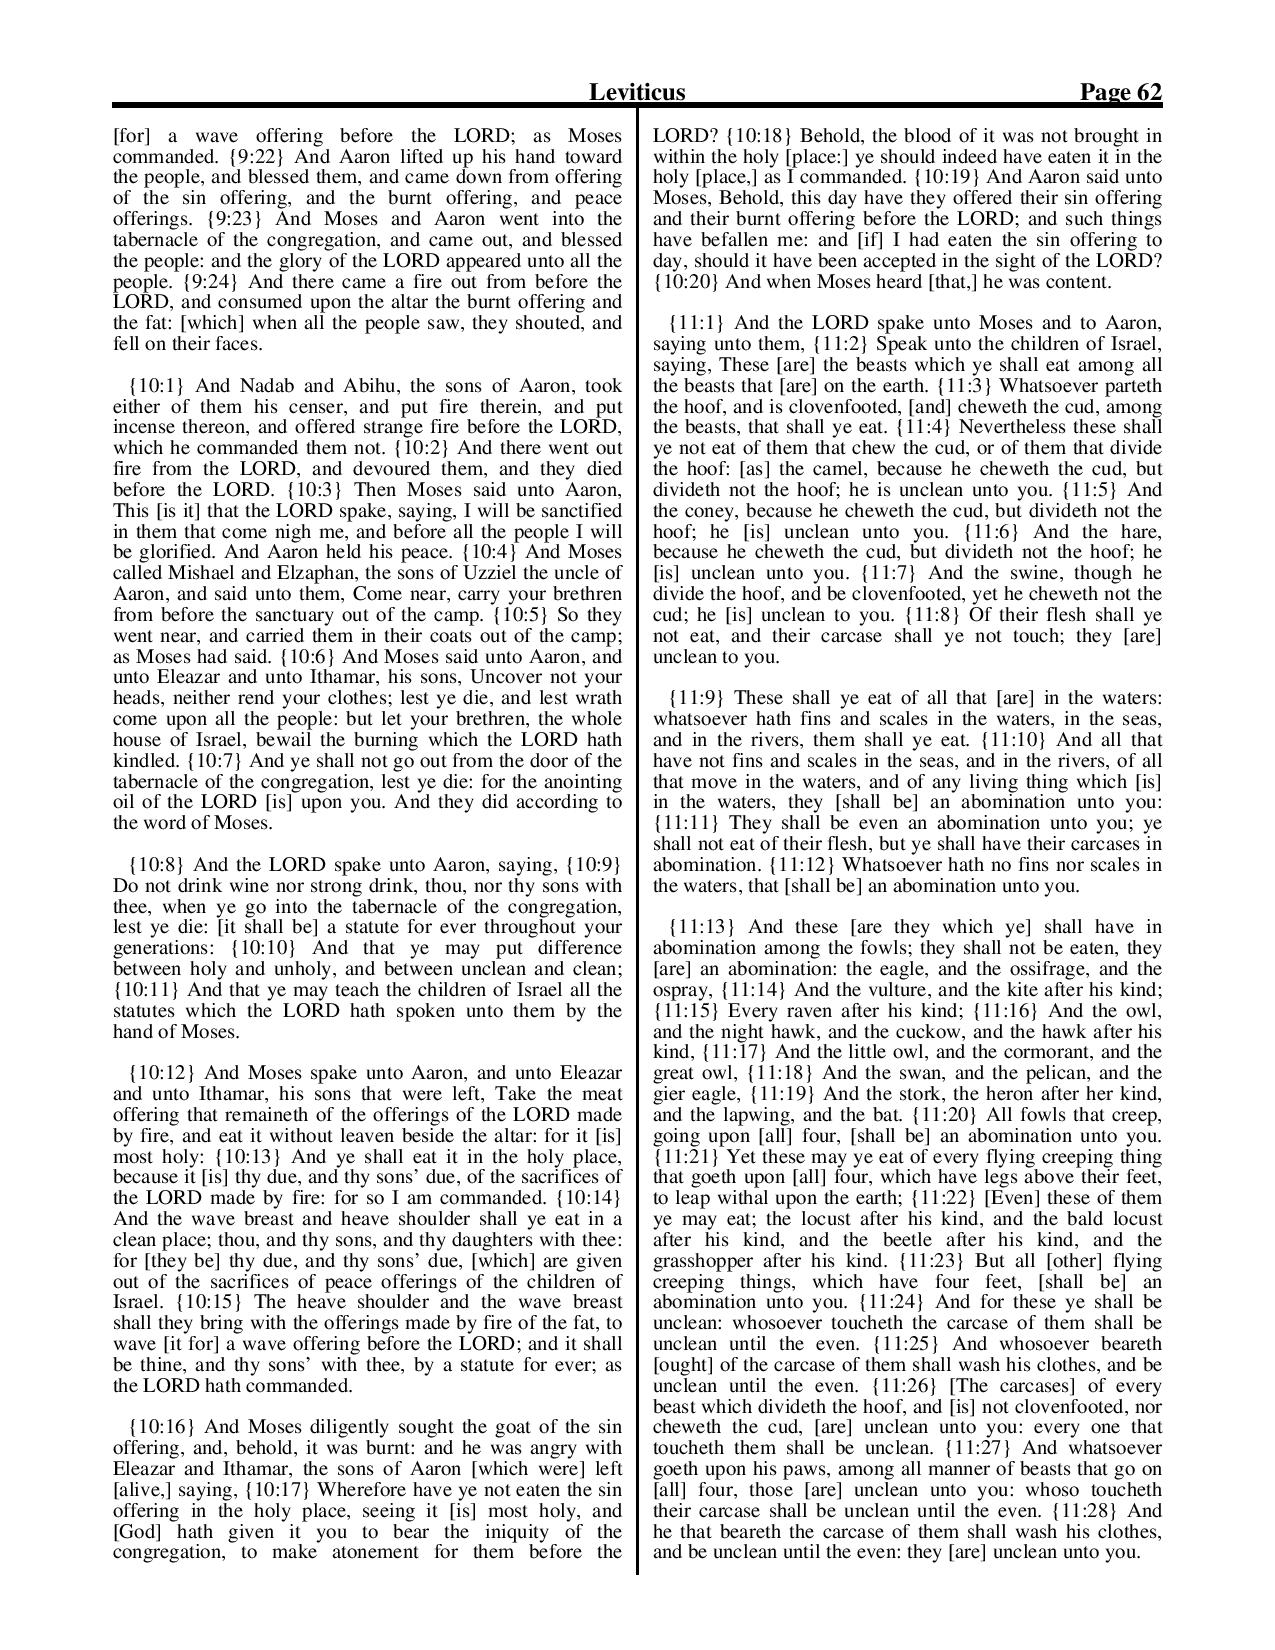 King-James-Bible-KJV-Bible-PDF-page-083